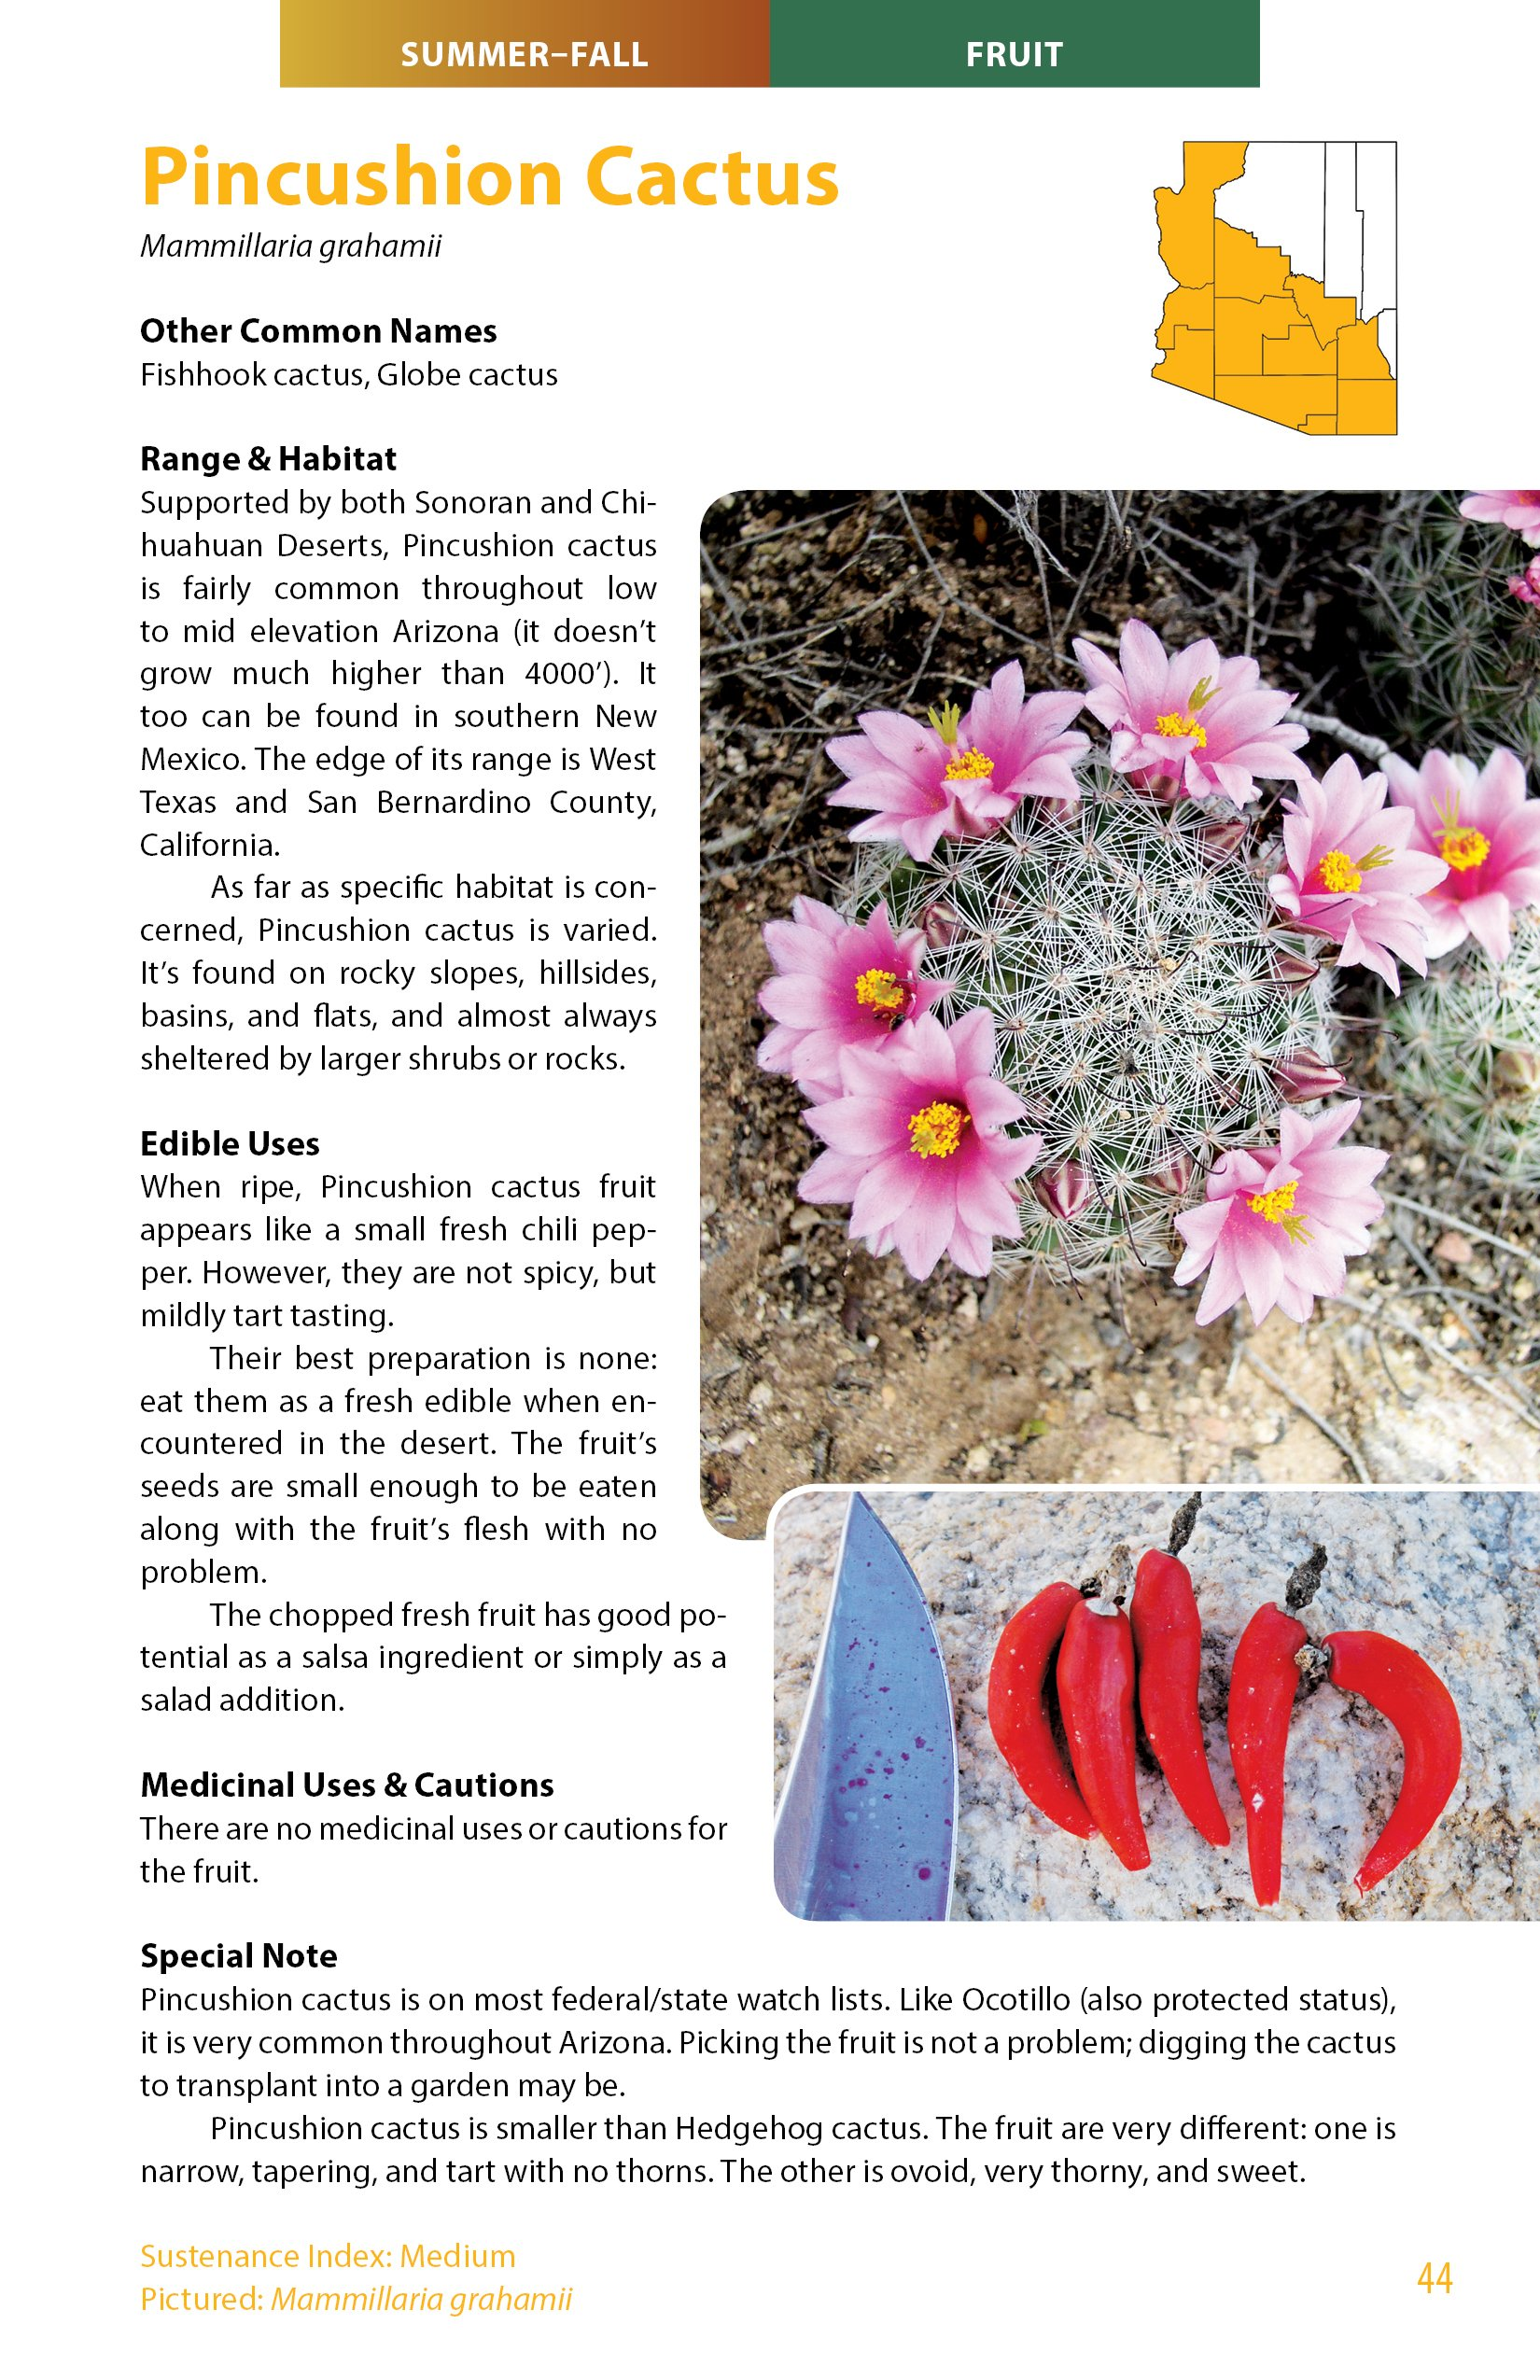 The spice doc edible and medicinal flowers - Sonoran Desert Food Plants Edible Uses For The Desert S Wild Bounty Charles W Kane 9780998287126 Amazon Com Books